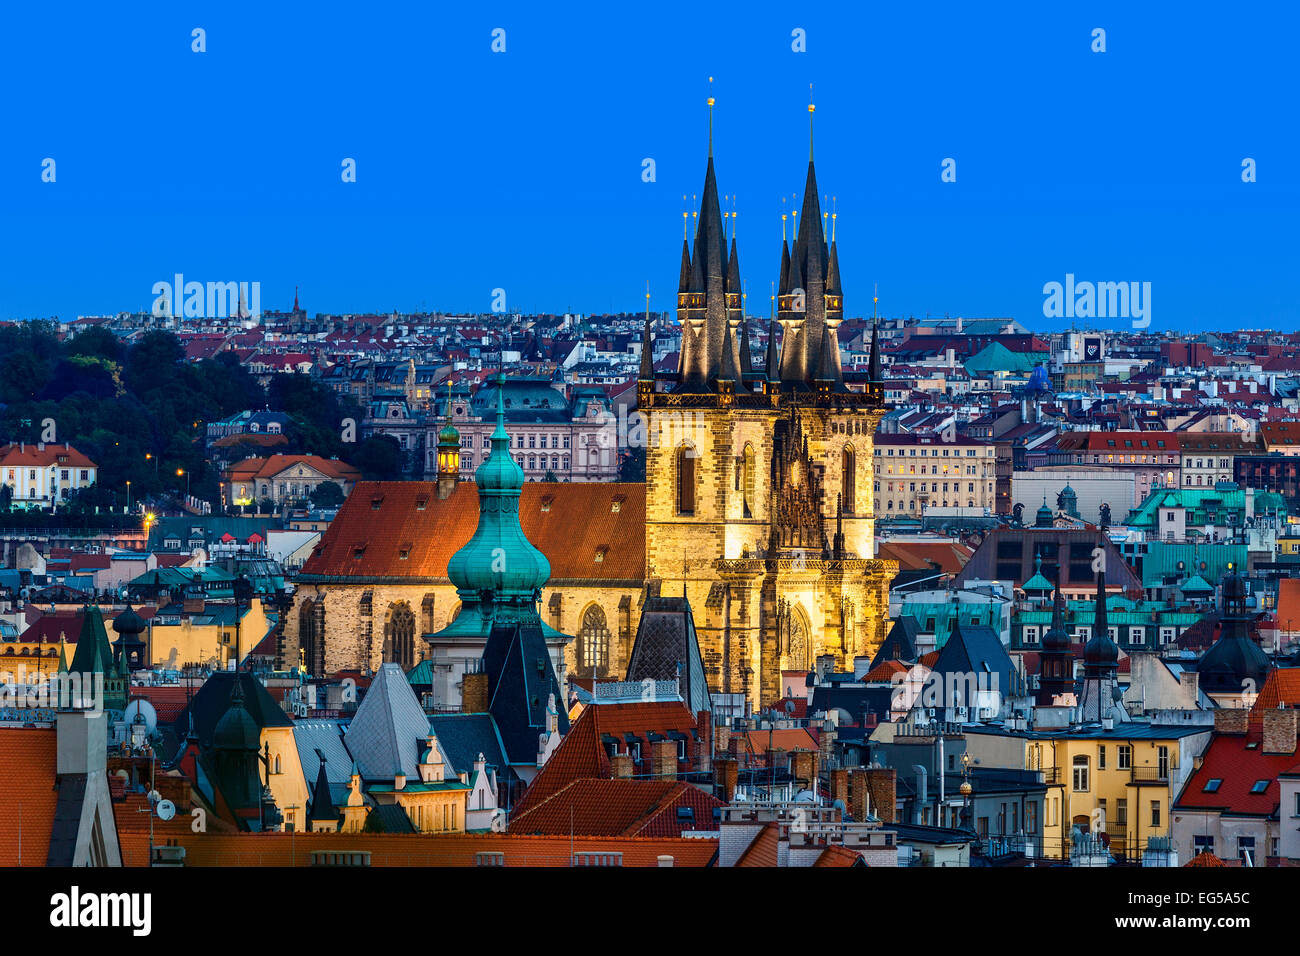 Toits de Prague au crépuscule avec l'église de Tyn Photo Stock